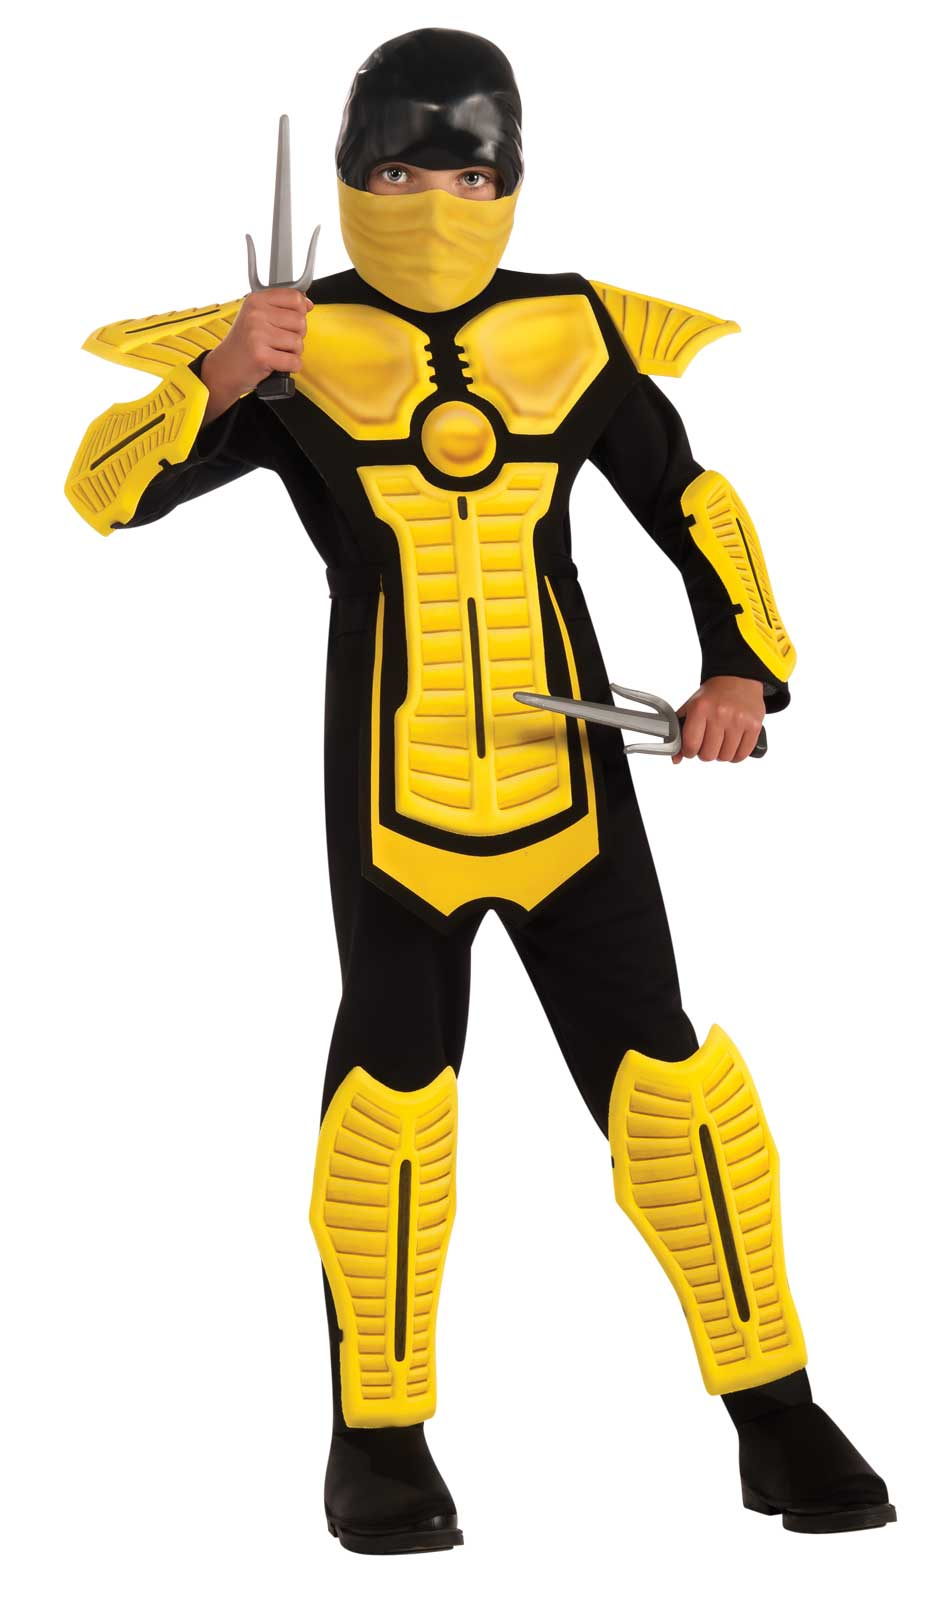 ... blue ranger costume · childrens modern ninja package · boys ...  sc 1 st  Best Kids Costumes & Blue Ninja Costume For Kids - Best Kids Costumes